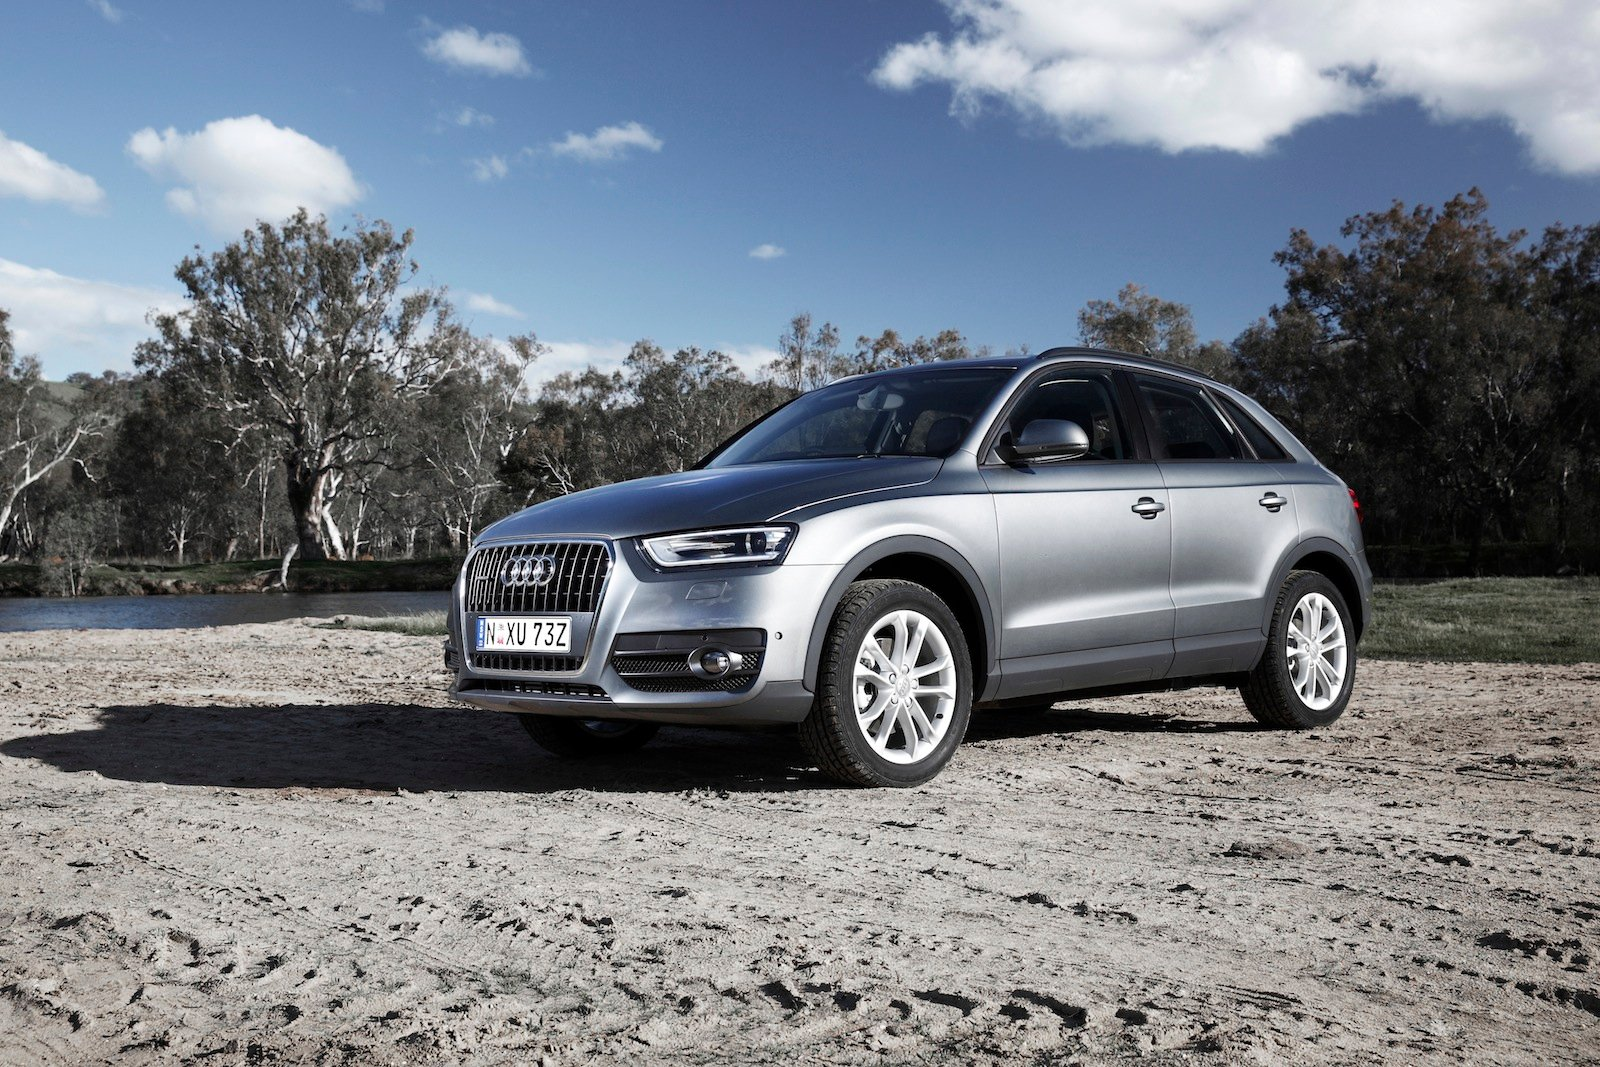 audi q3 gets new base model quattro only range photos 1 of 6